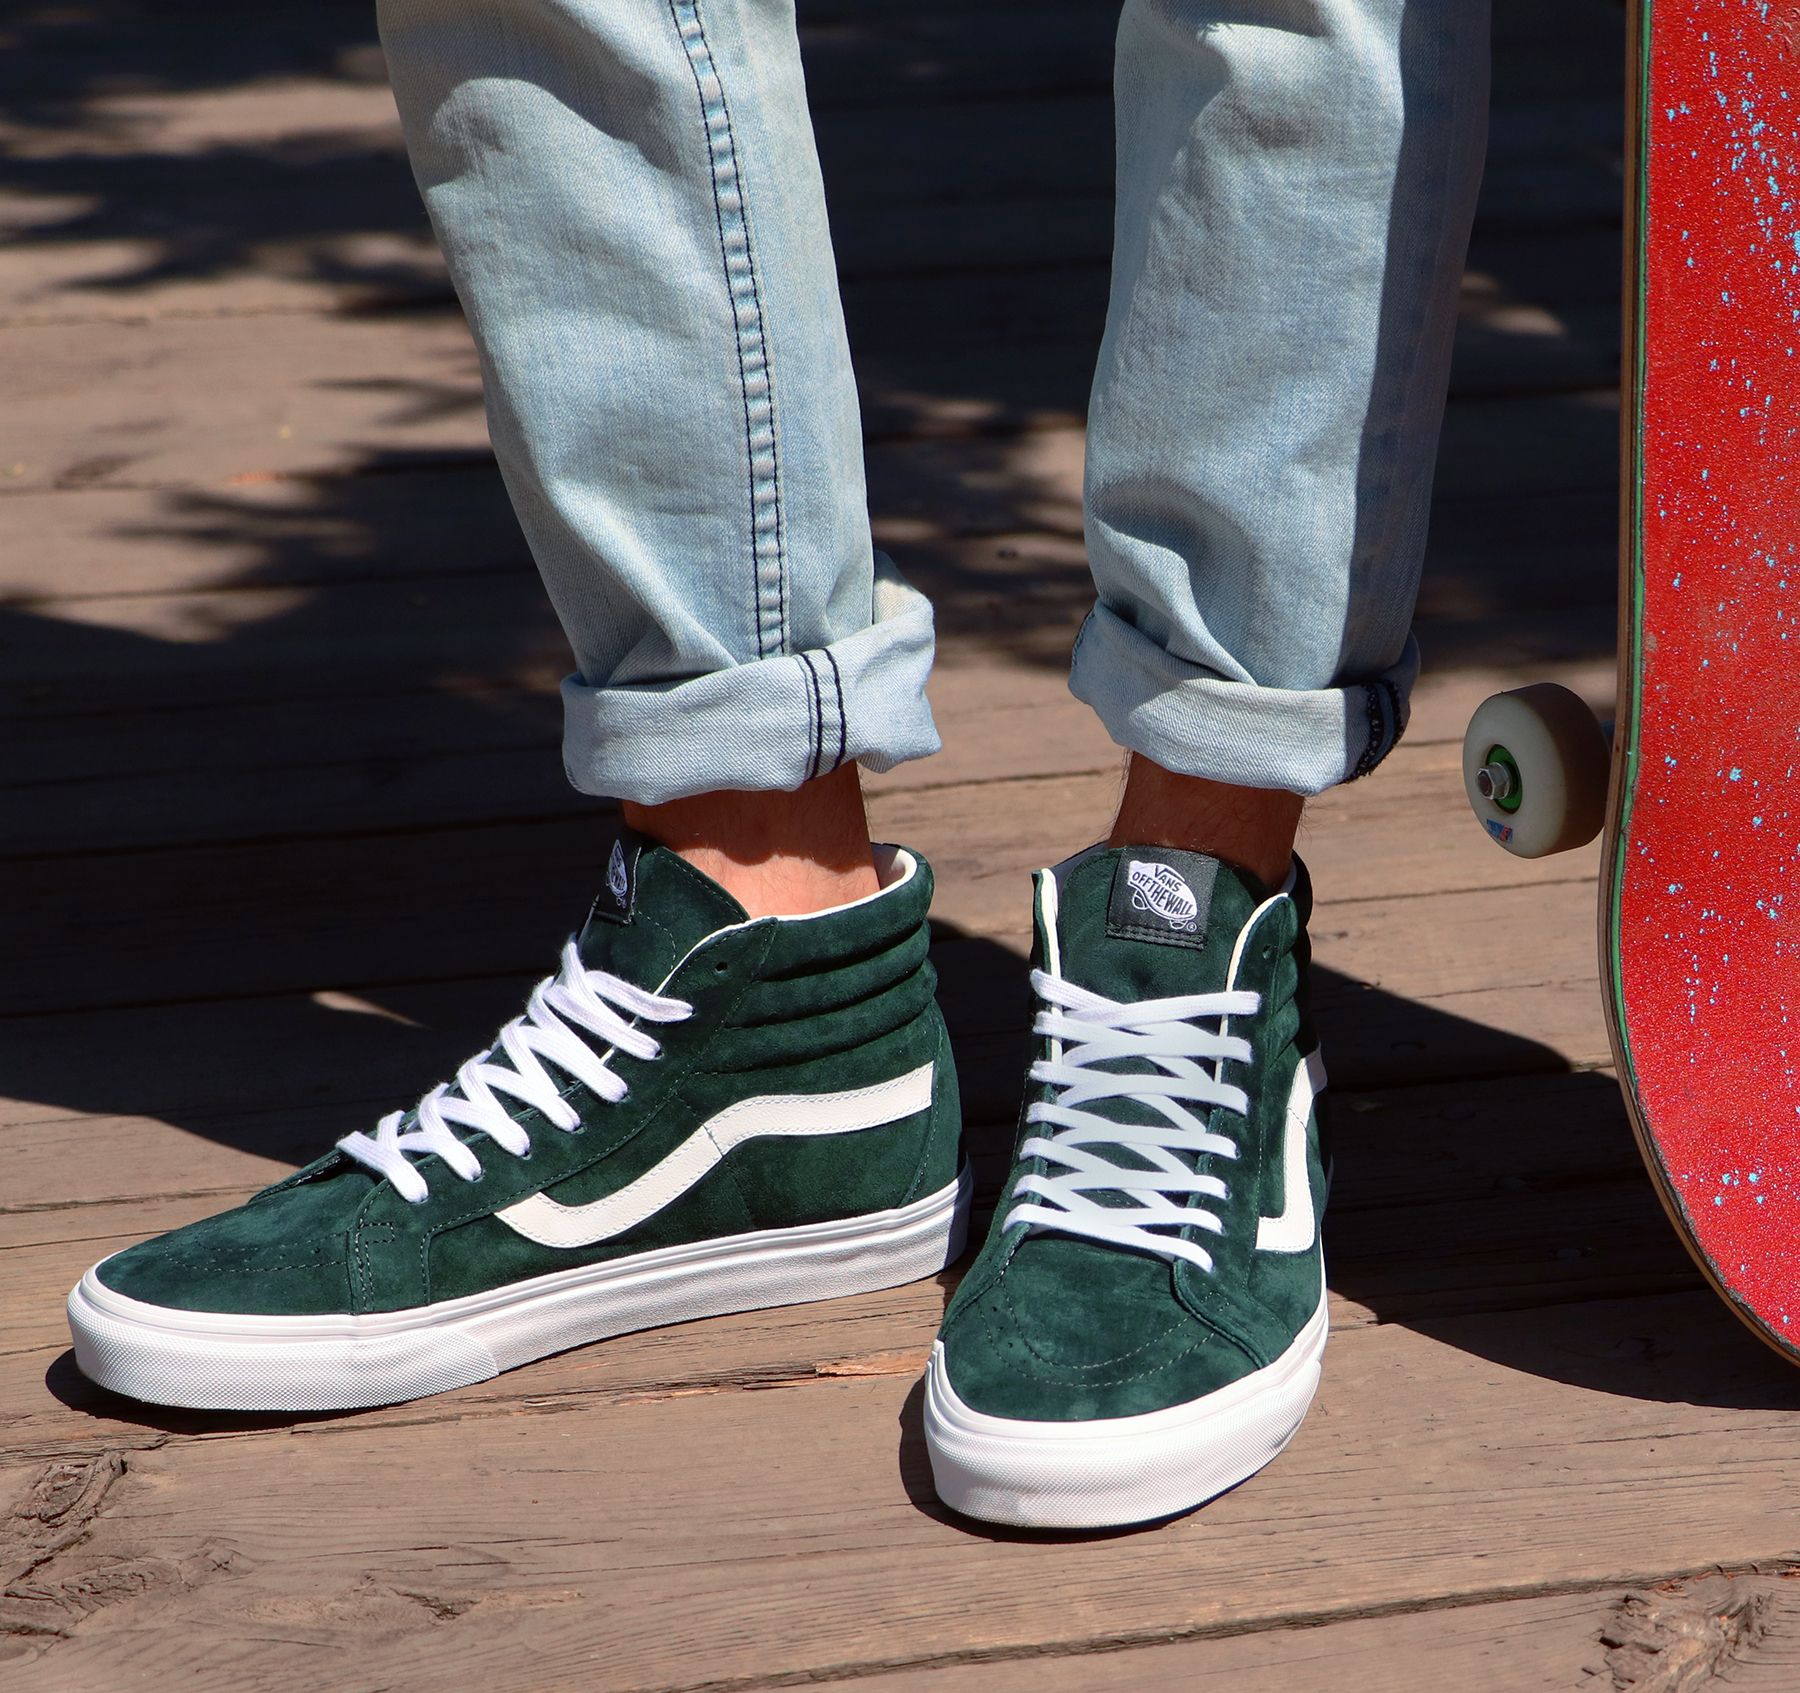 4deac5f392  Vans  Sk8Hi in Darkest Spruce is brand new for the season. Shop men s sizes  in-store and online.